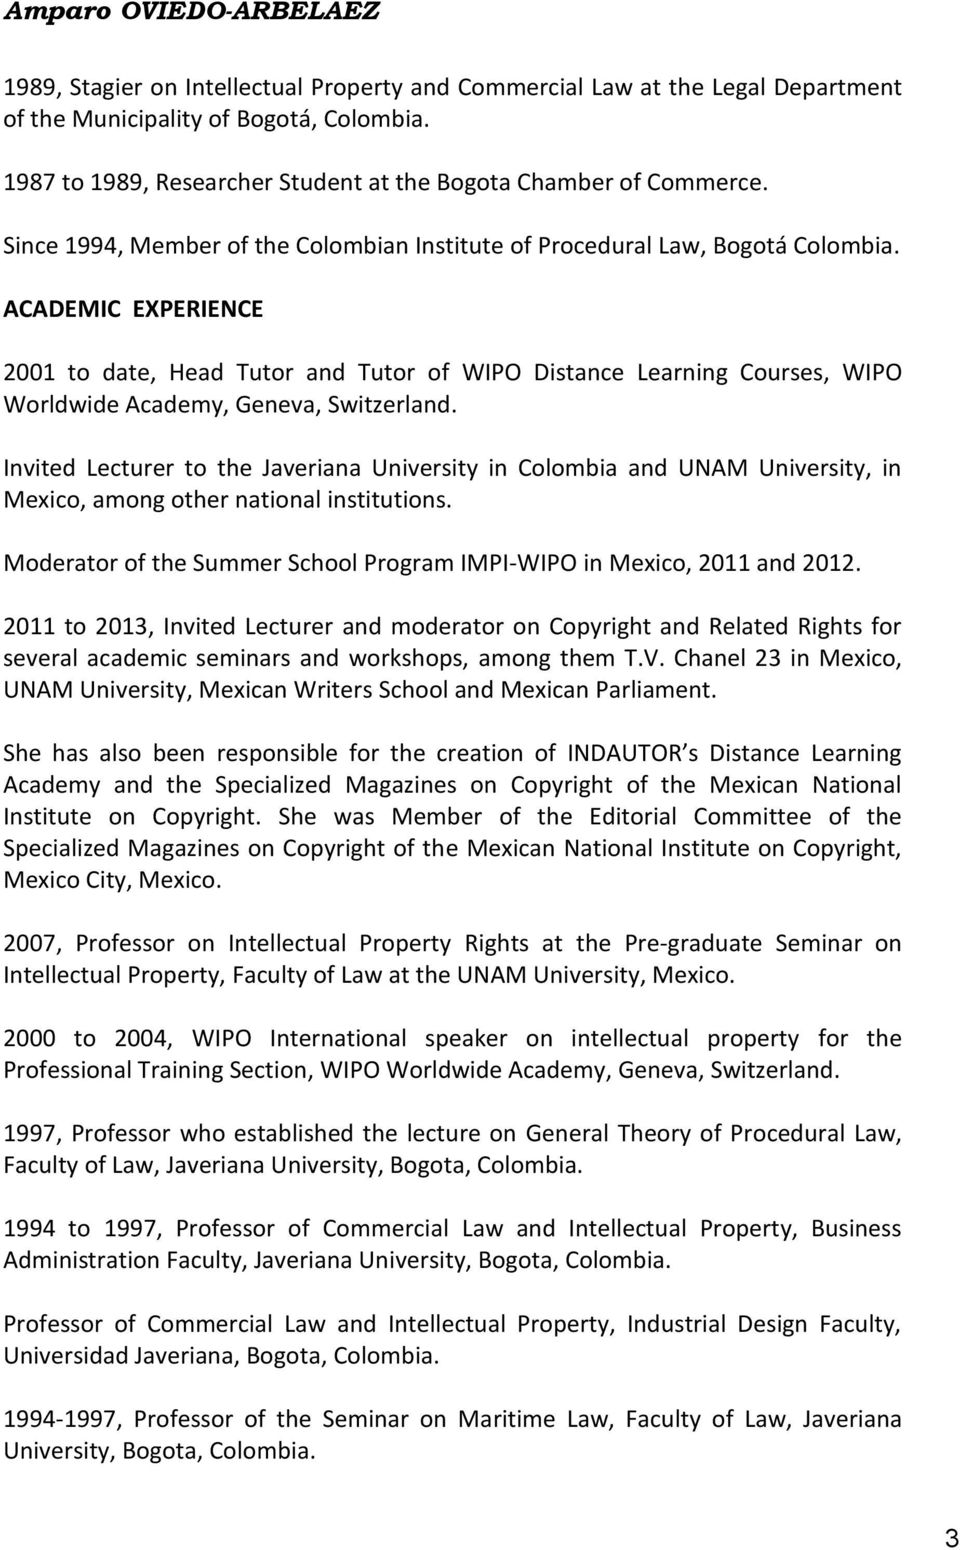 ACADEMIC EXPERIENCE 2001 to date, Head Tutor and Tutor of WIPO Distance Learning Courses, WIPO Worldwide Academy, Geneva, Switzerland.